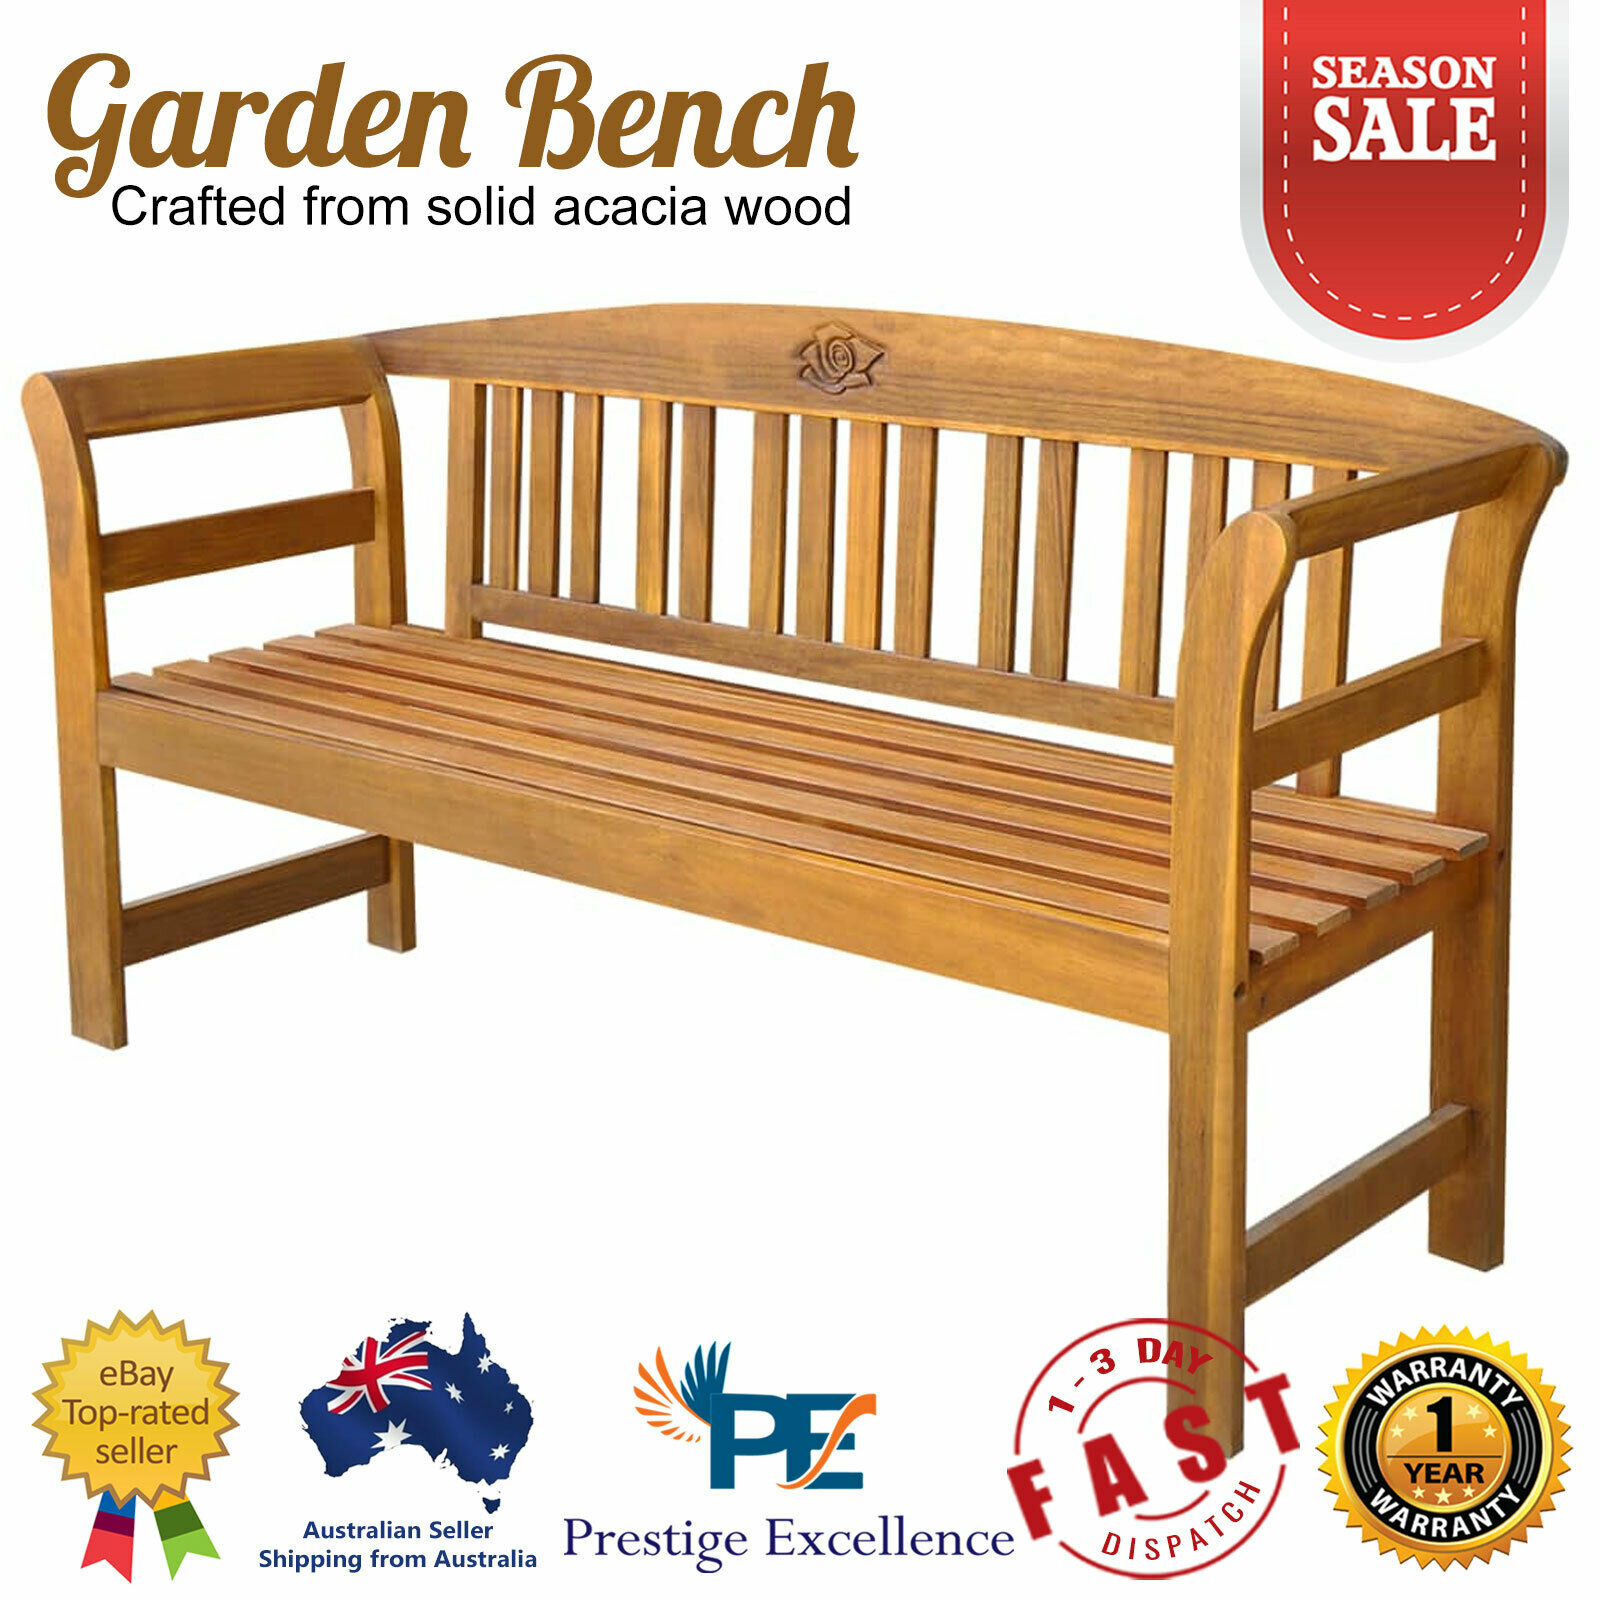 Front Porch Swing Set Outdoor Rustic Wooden Bench Wood Patio Chair 4 Foot Deck For Sale Online Ebay